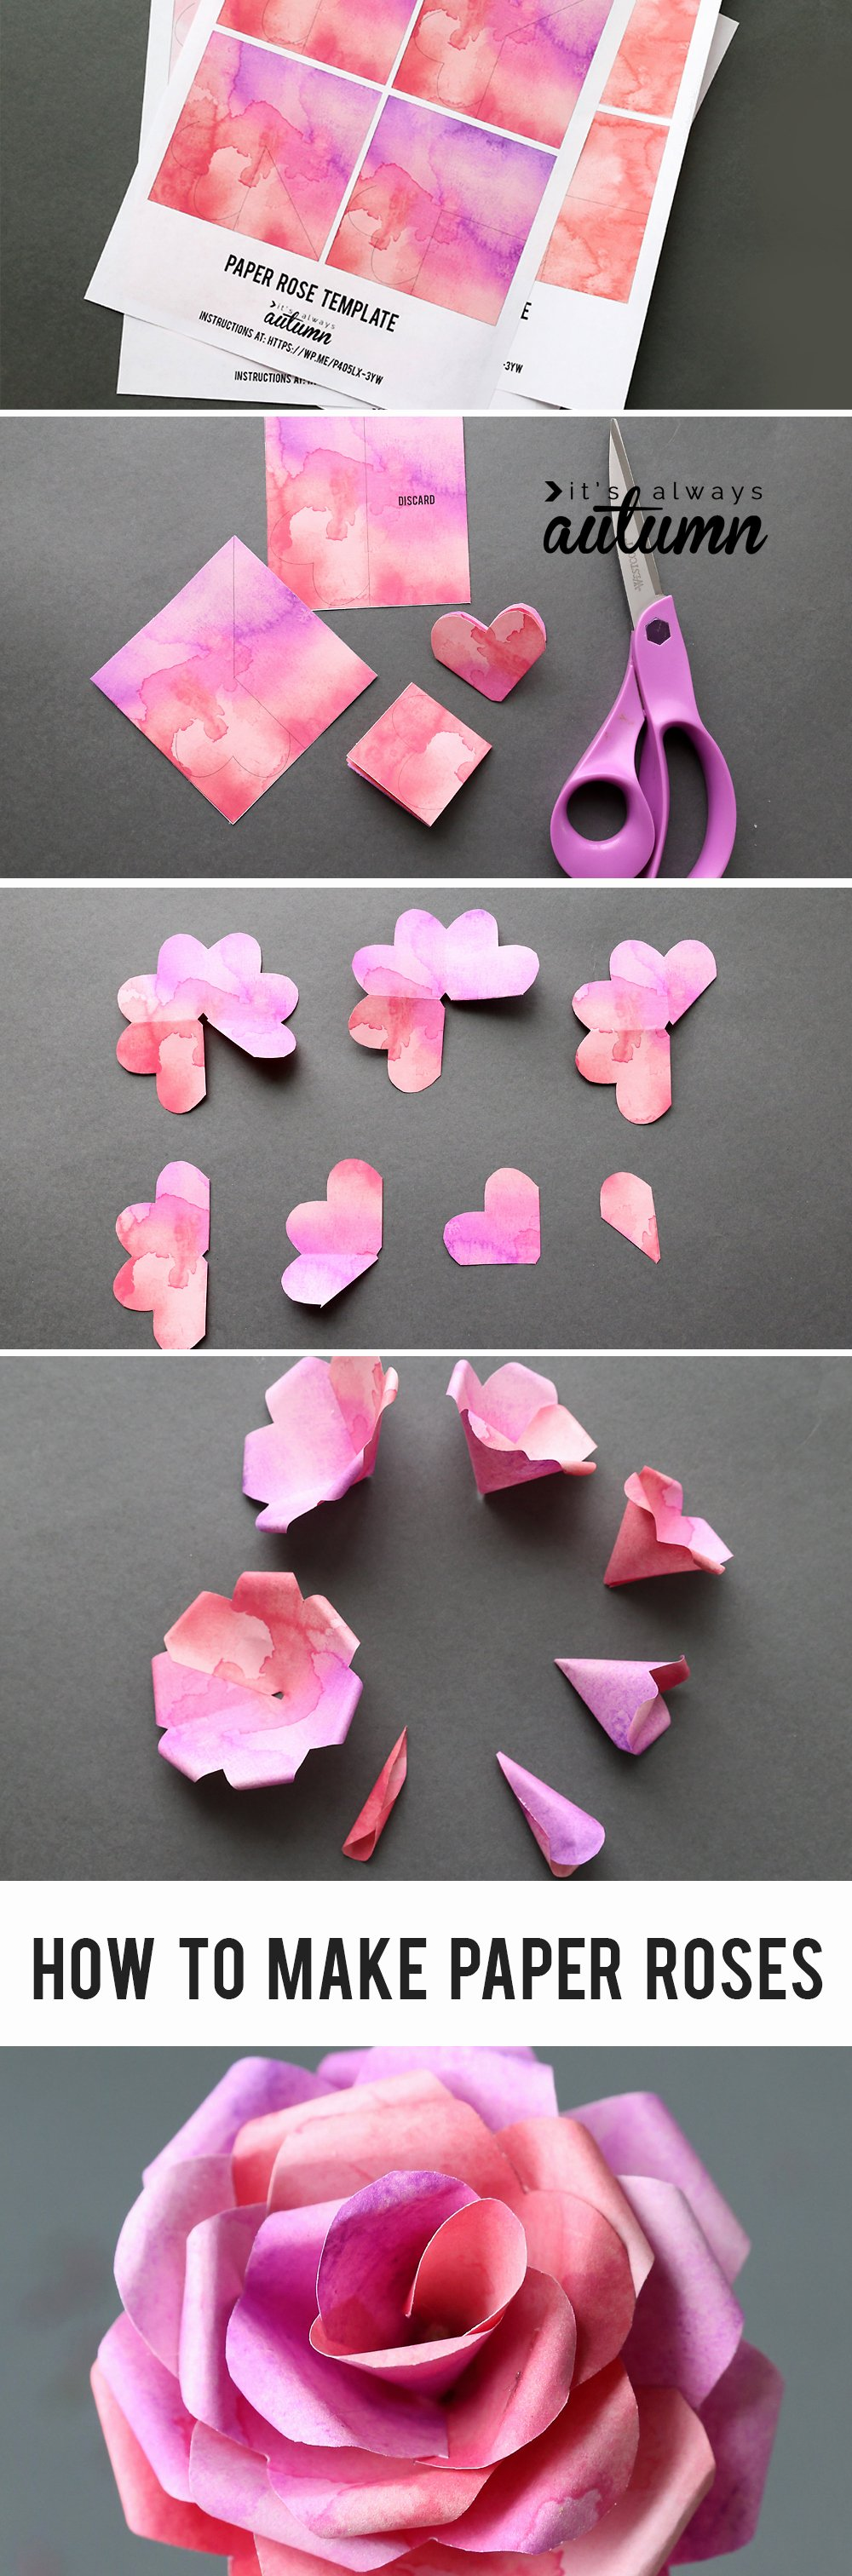 Paper Flower Pattern Printable Awesome Make Gorgeous Paper Roses with This Free Paper Rose